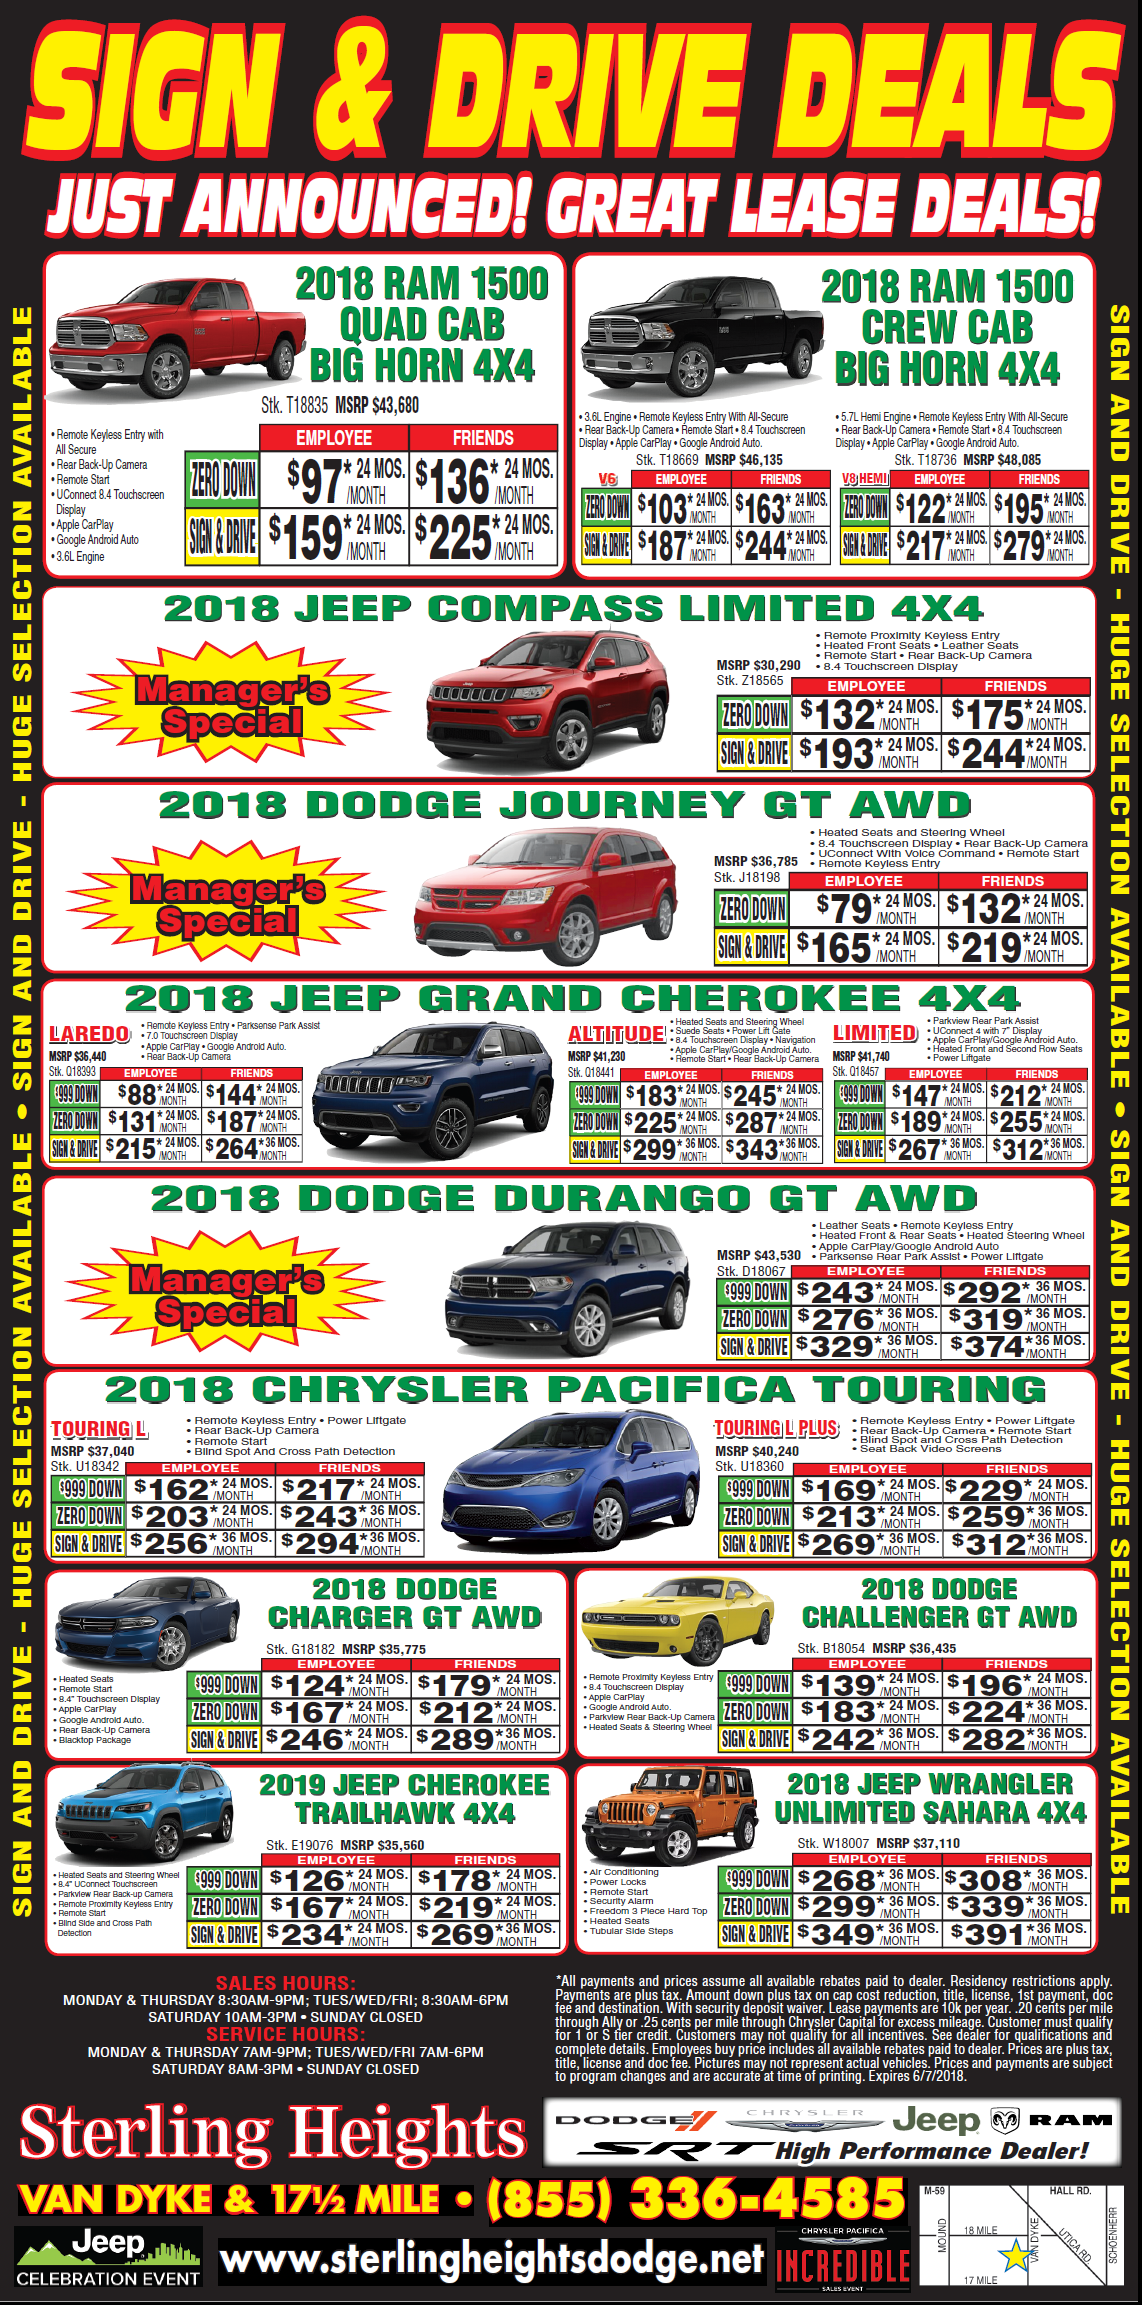 sterling heights pdf preview com businessdirectory pdfdisplayad used dodge ads other macombdaily download marketplace todays